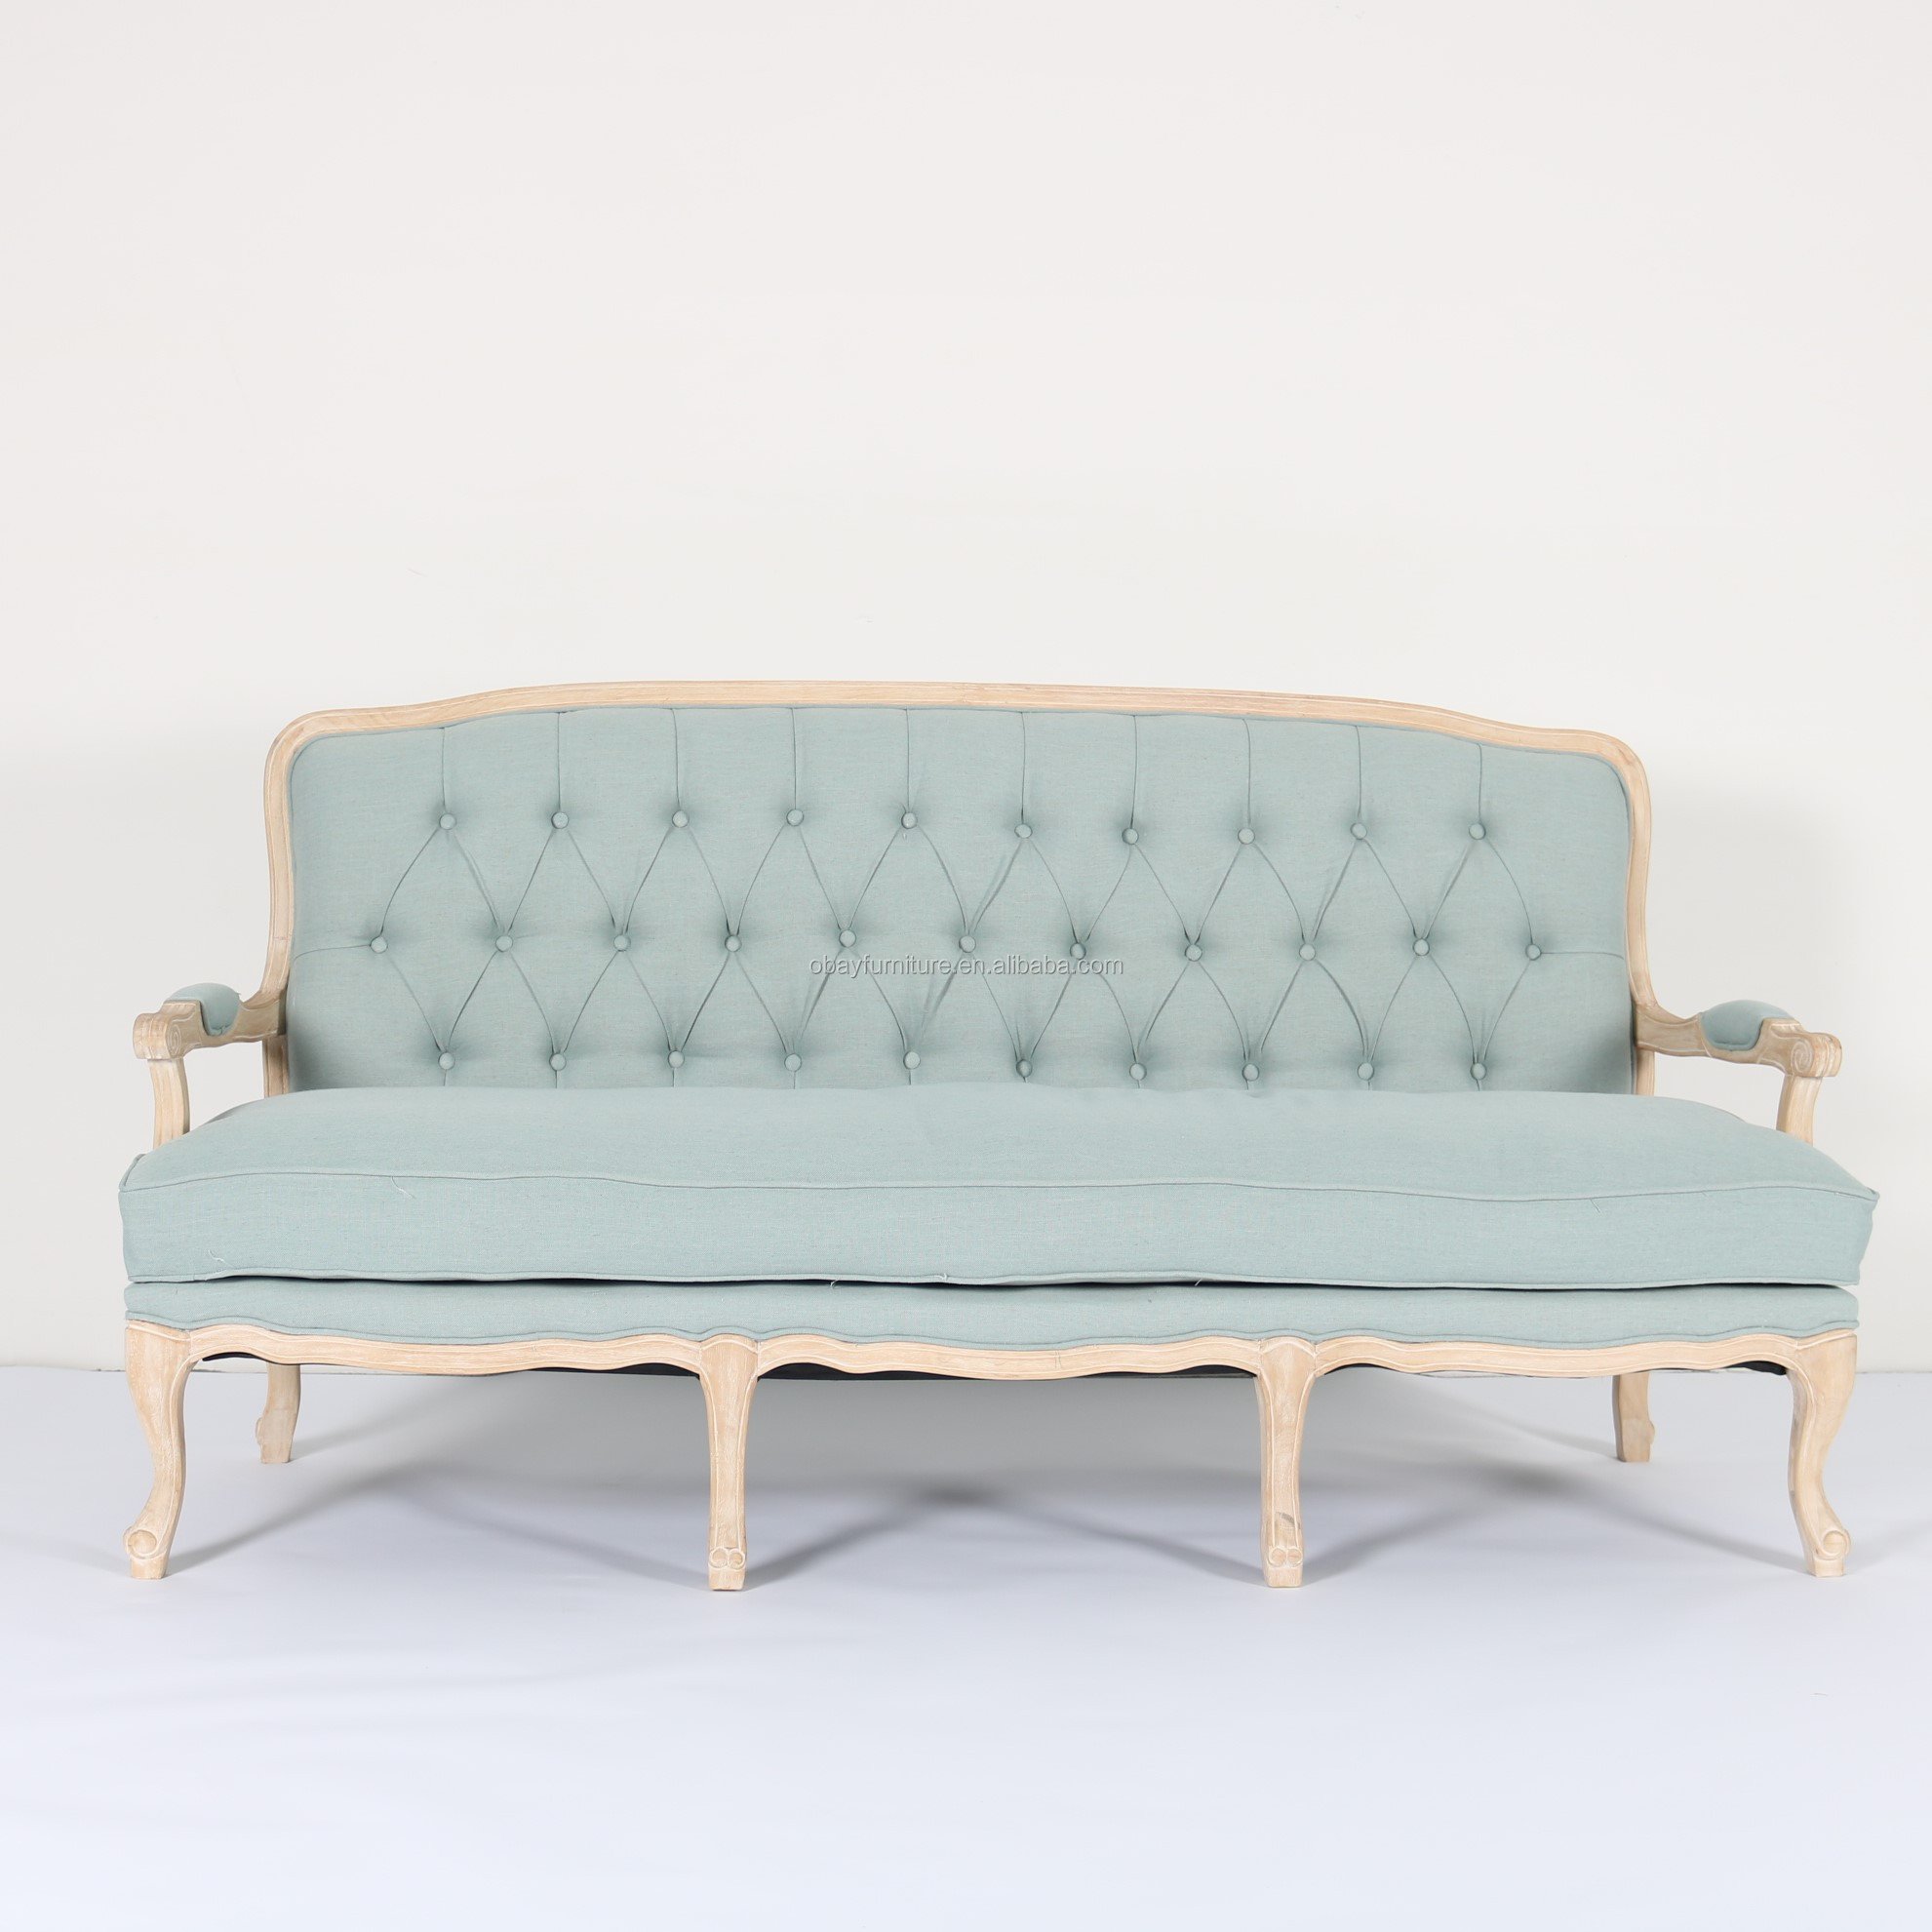 Admirable Dubai Antique Solid Oak Wood Event Sofas Classic French Country Wooden Sofa Rustic Event Rental Wedding Furniture Buy Wedding Hall Furniture Wedding Beatyapartments Chair Design Images Beatyapartmentscom